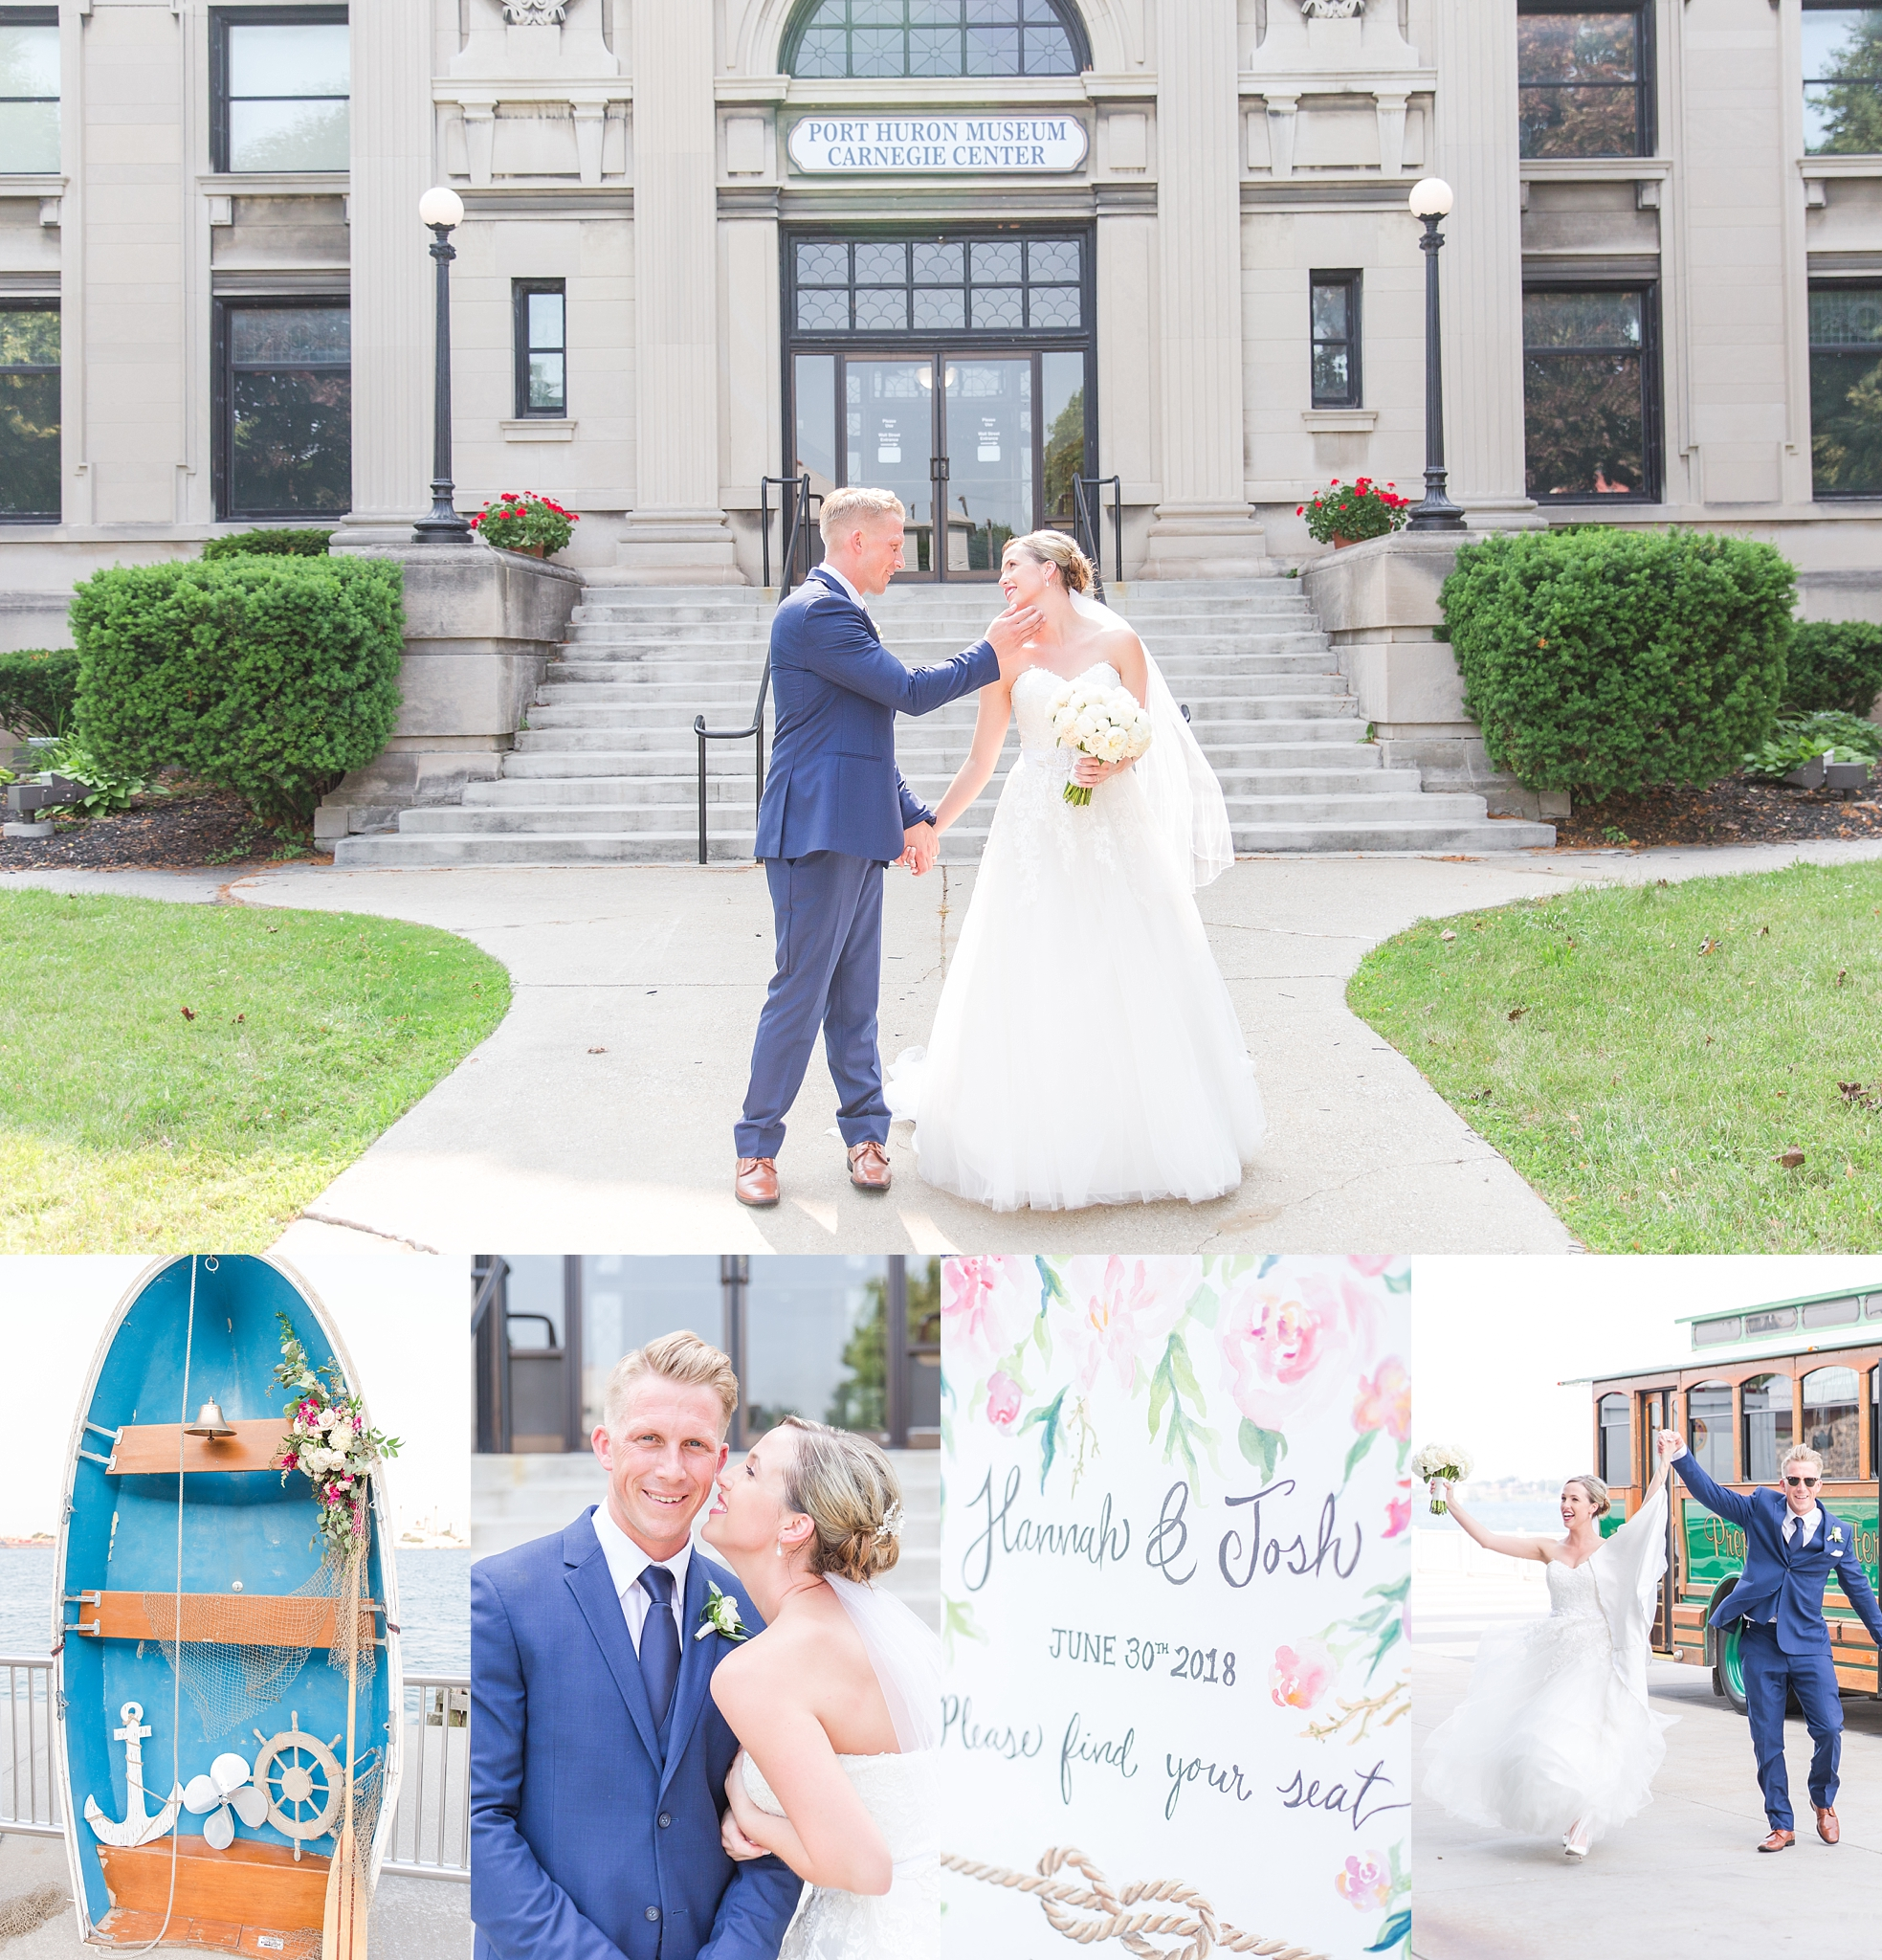 fun-nautical-wedding-photos-at-the-bean-dock-in-downtown-port-huron-michigan-by-courtney-carolyn-photography_0116.jpg